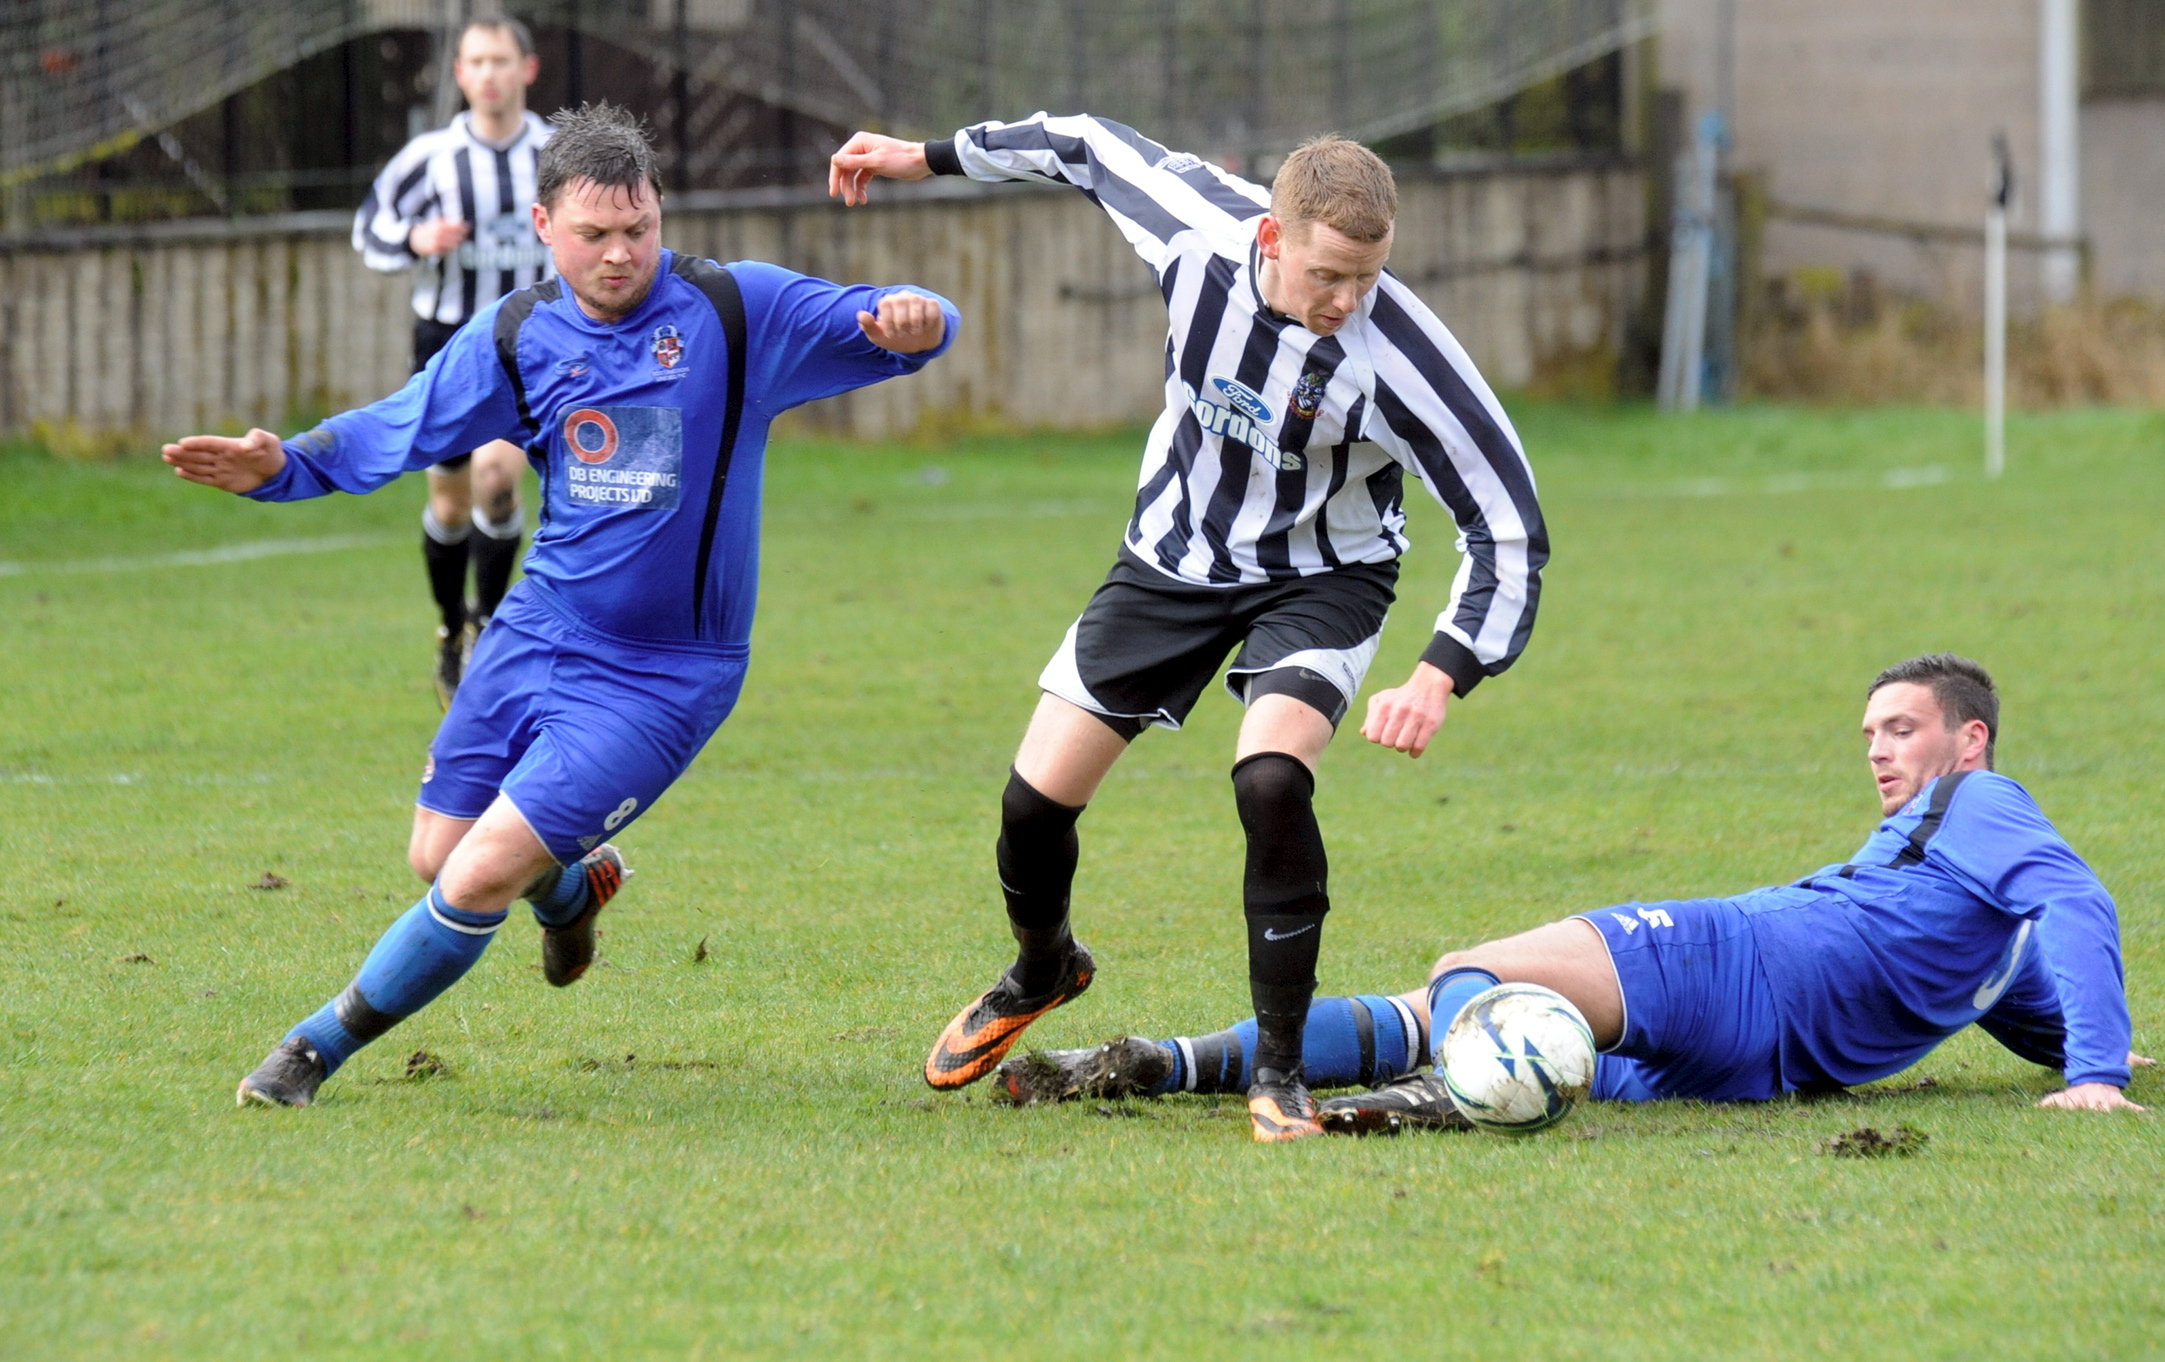 Old Boltonians' goalscorer Dean Hailwood threads a path between two Tottington players